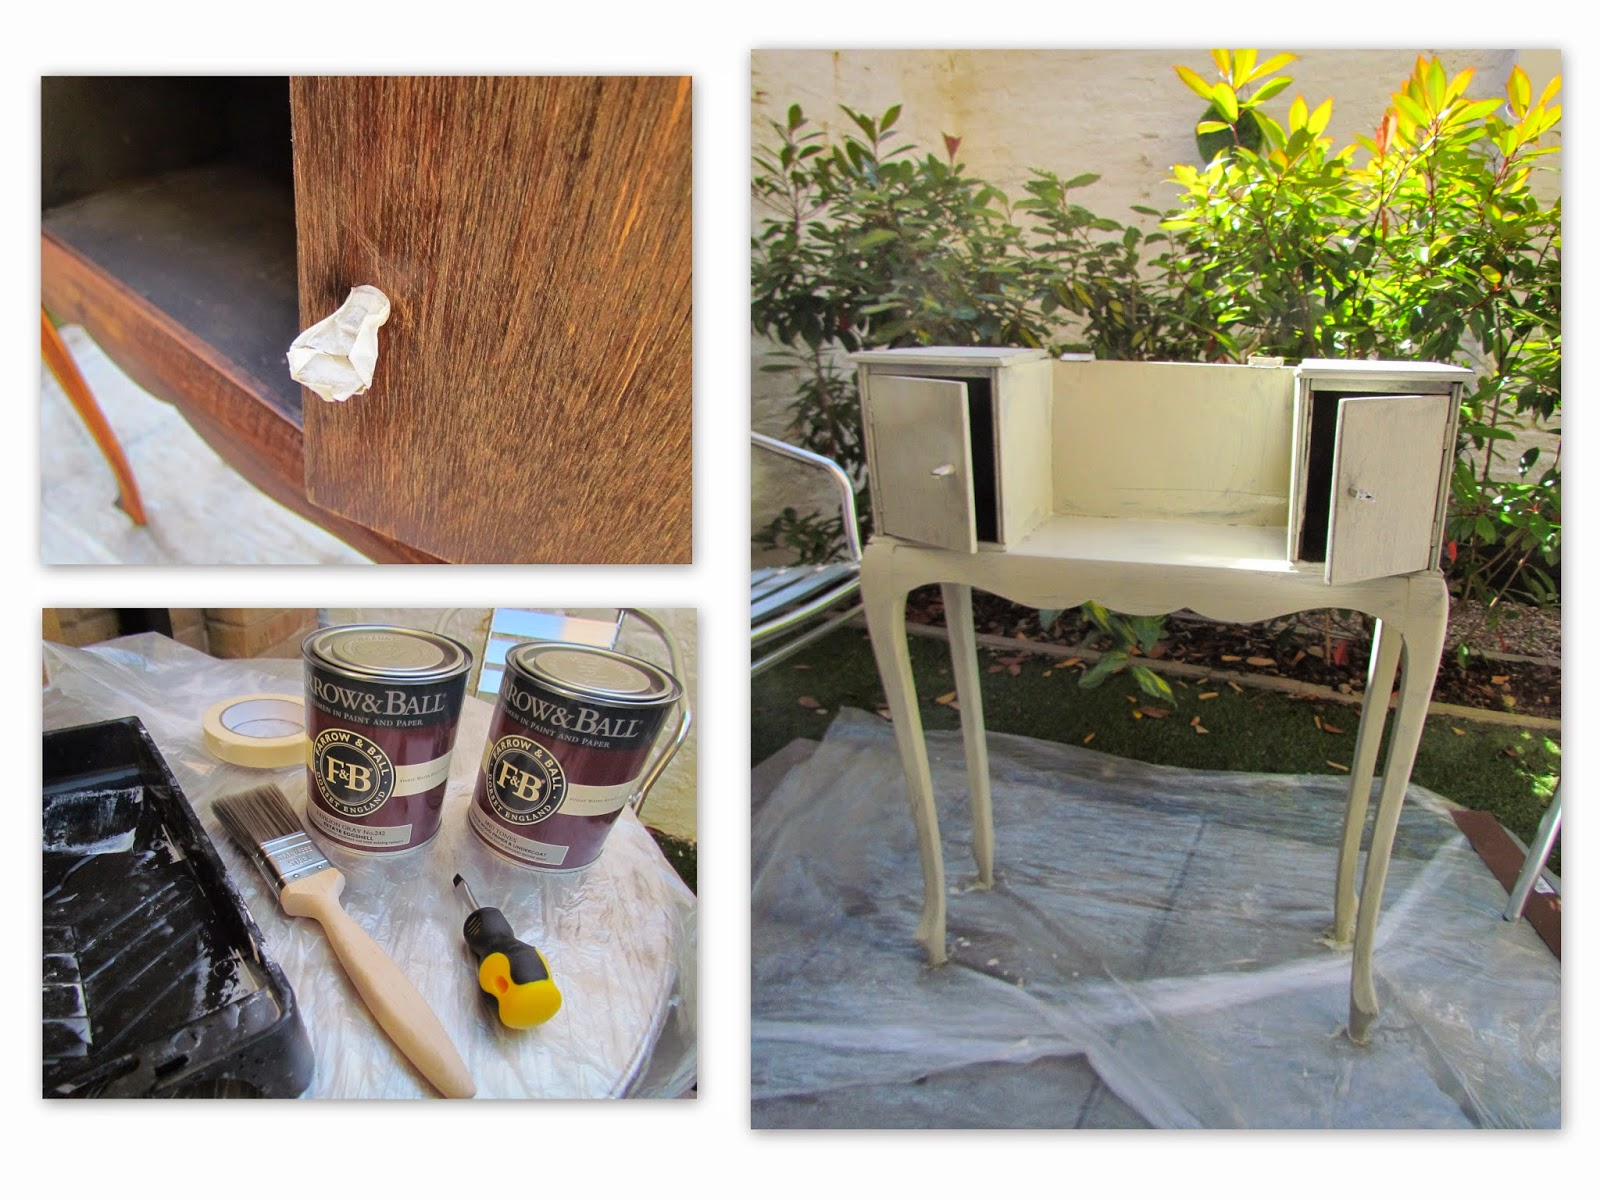 upcycling furniture with farrow and ball paints and primers